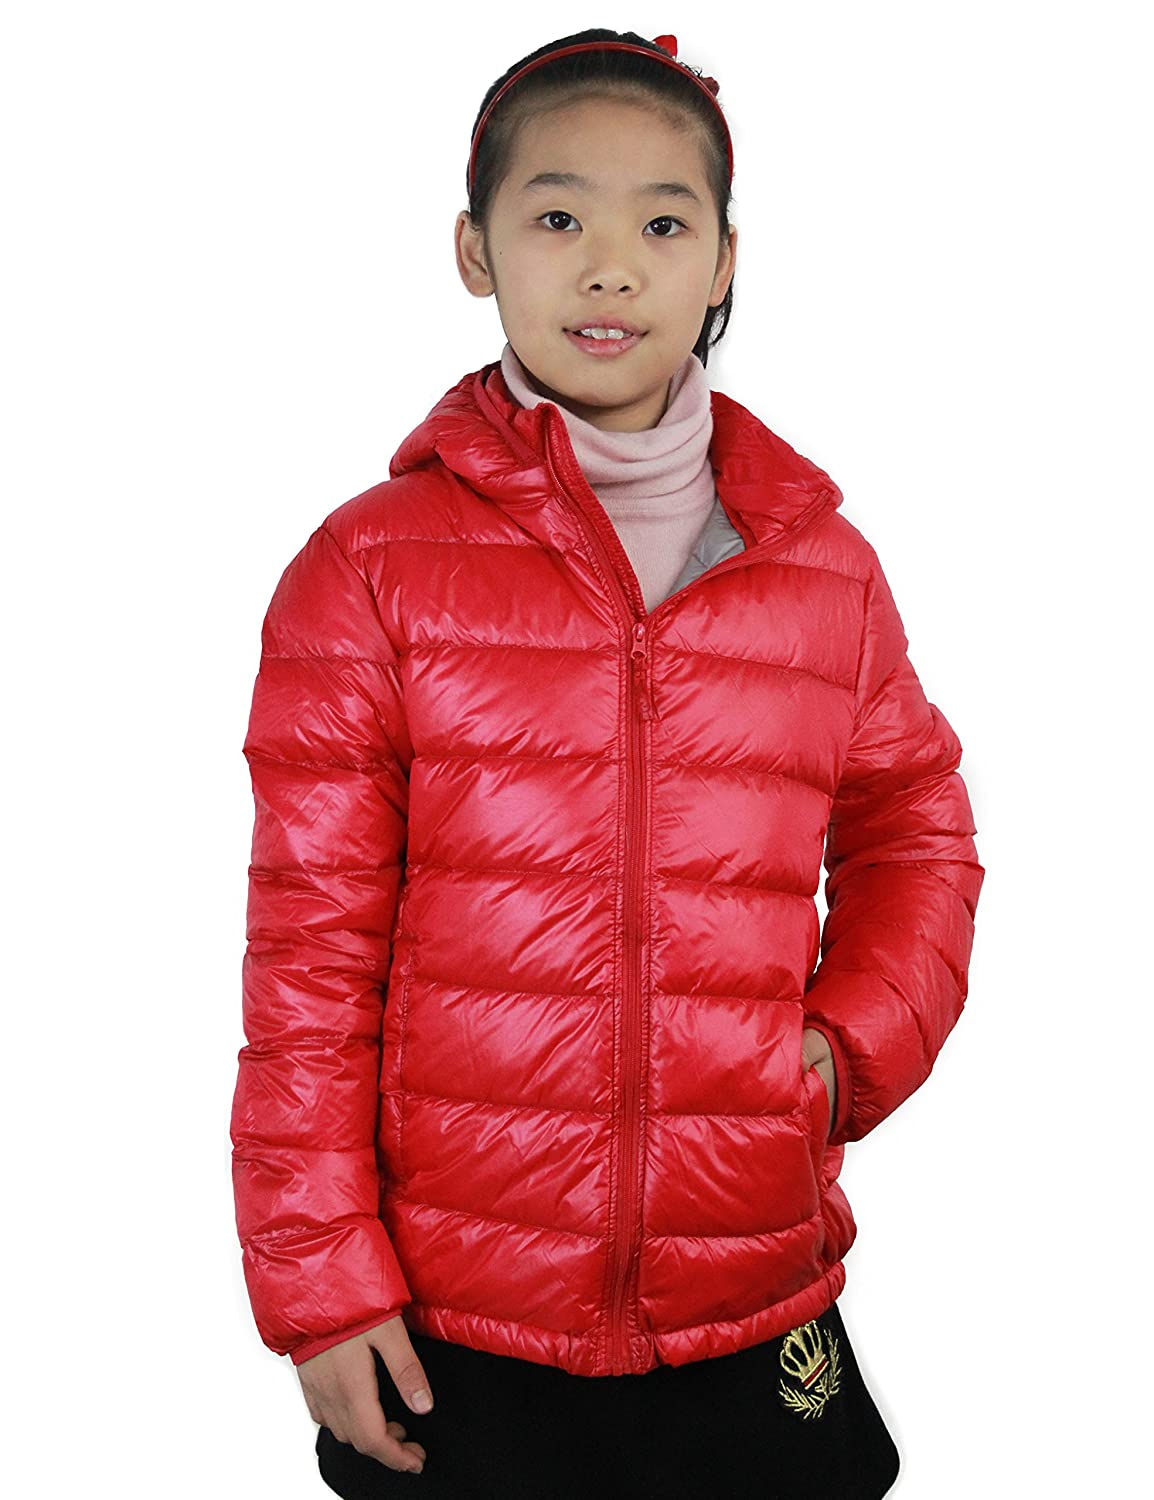 CHERRY CHICK Girl's Ultralight Packable Down Parka Jacket with Detachable Hood 170313ABKID